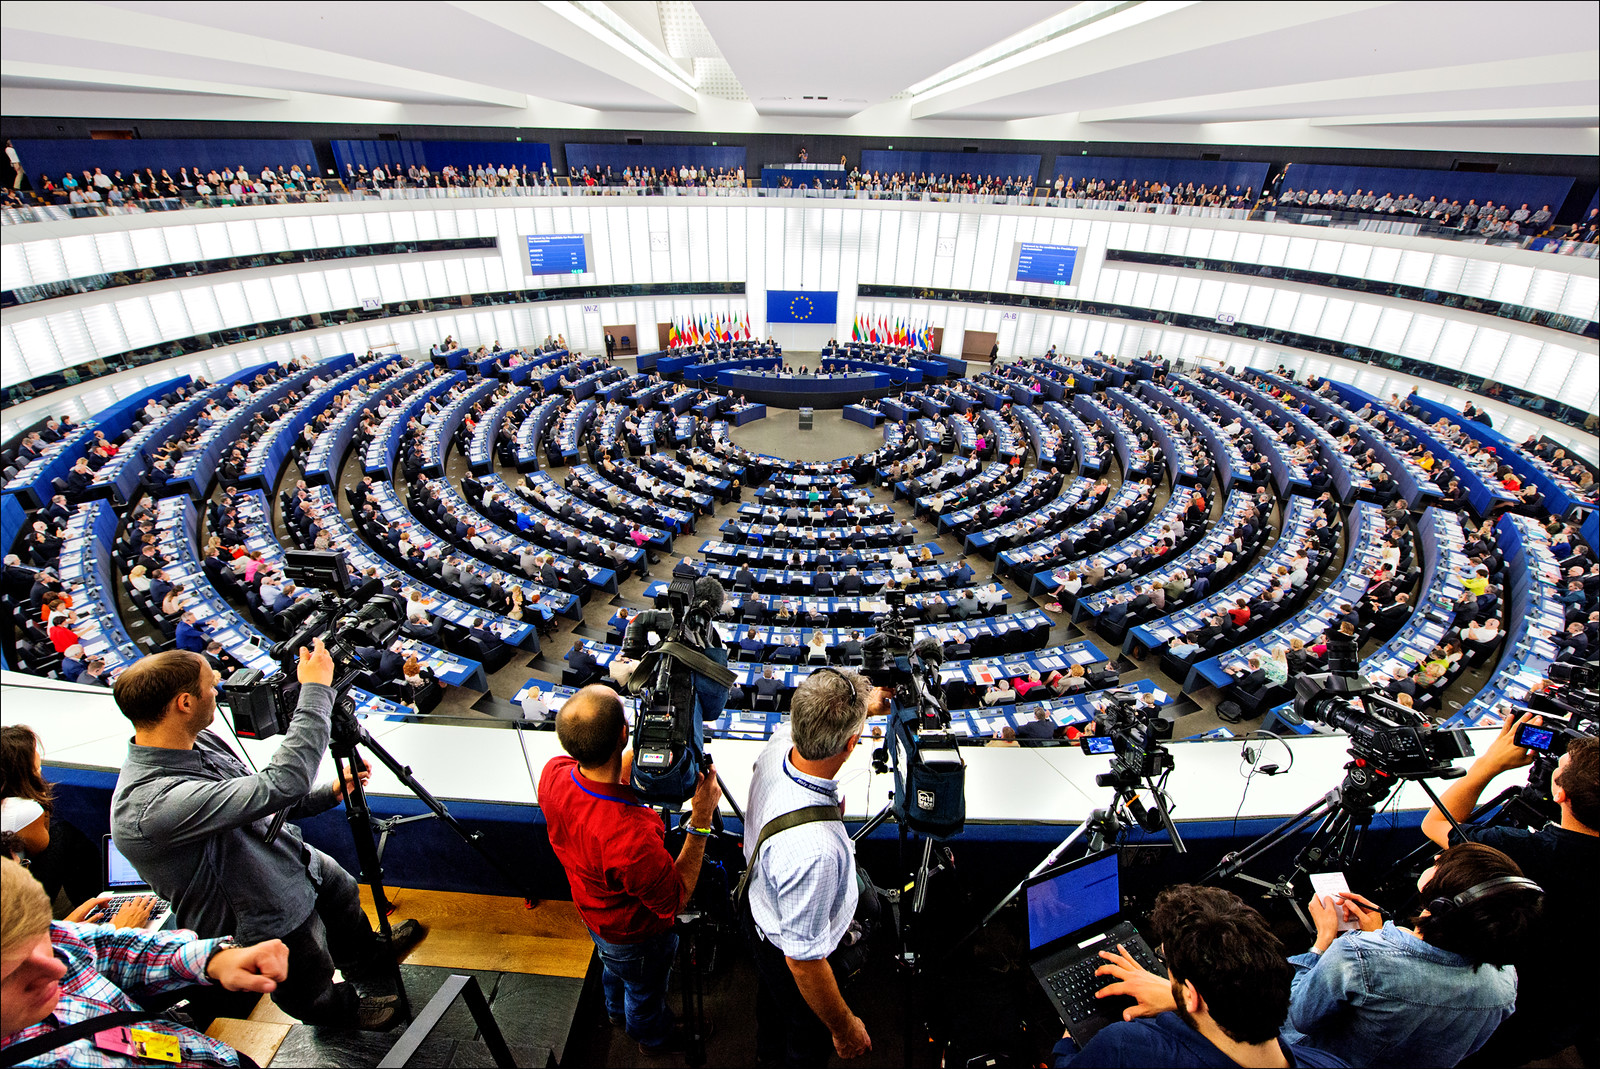 Debate and vote on Jean-Claude Juncker for President of the European Commission